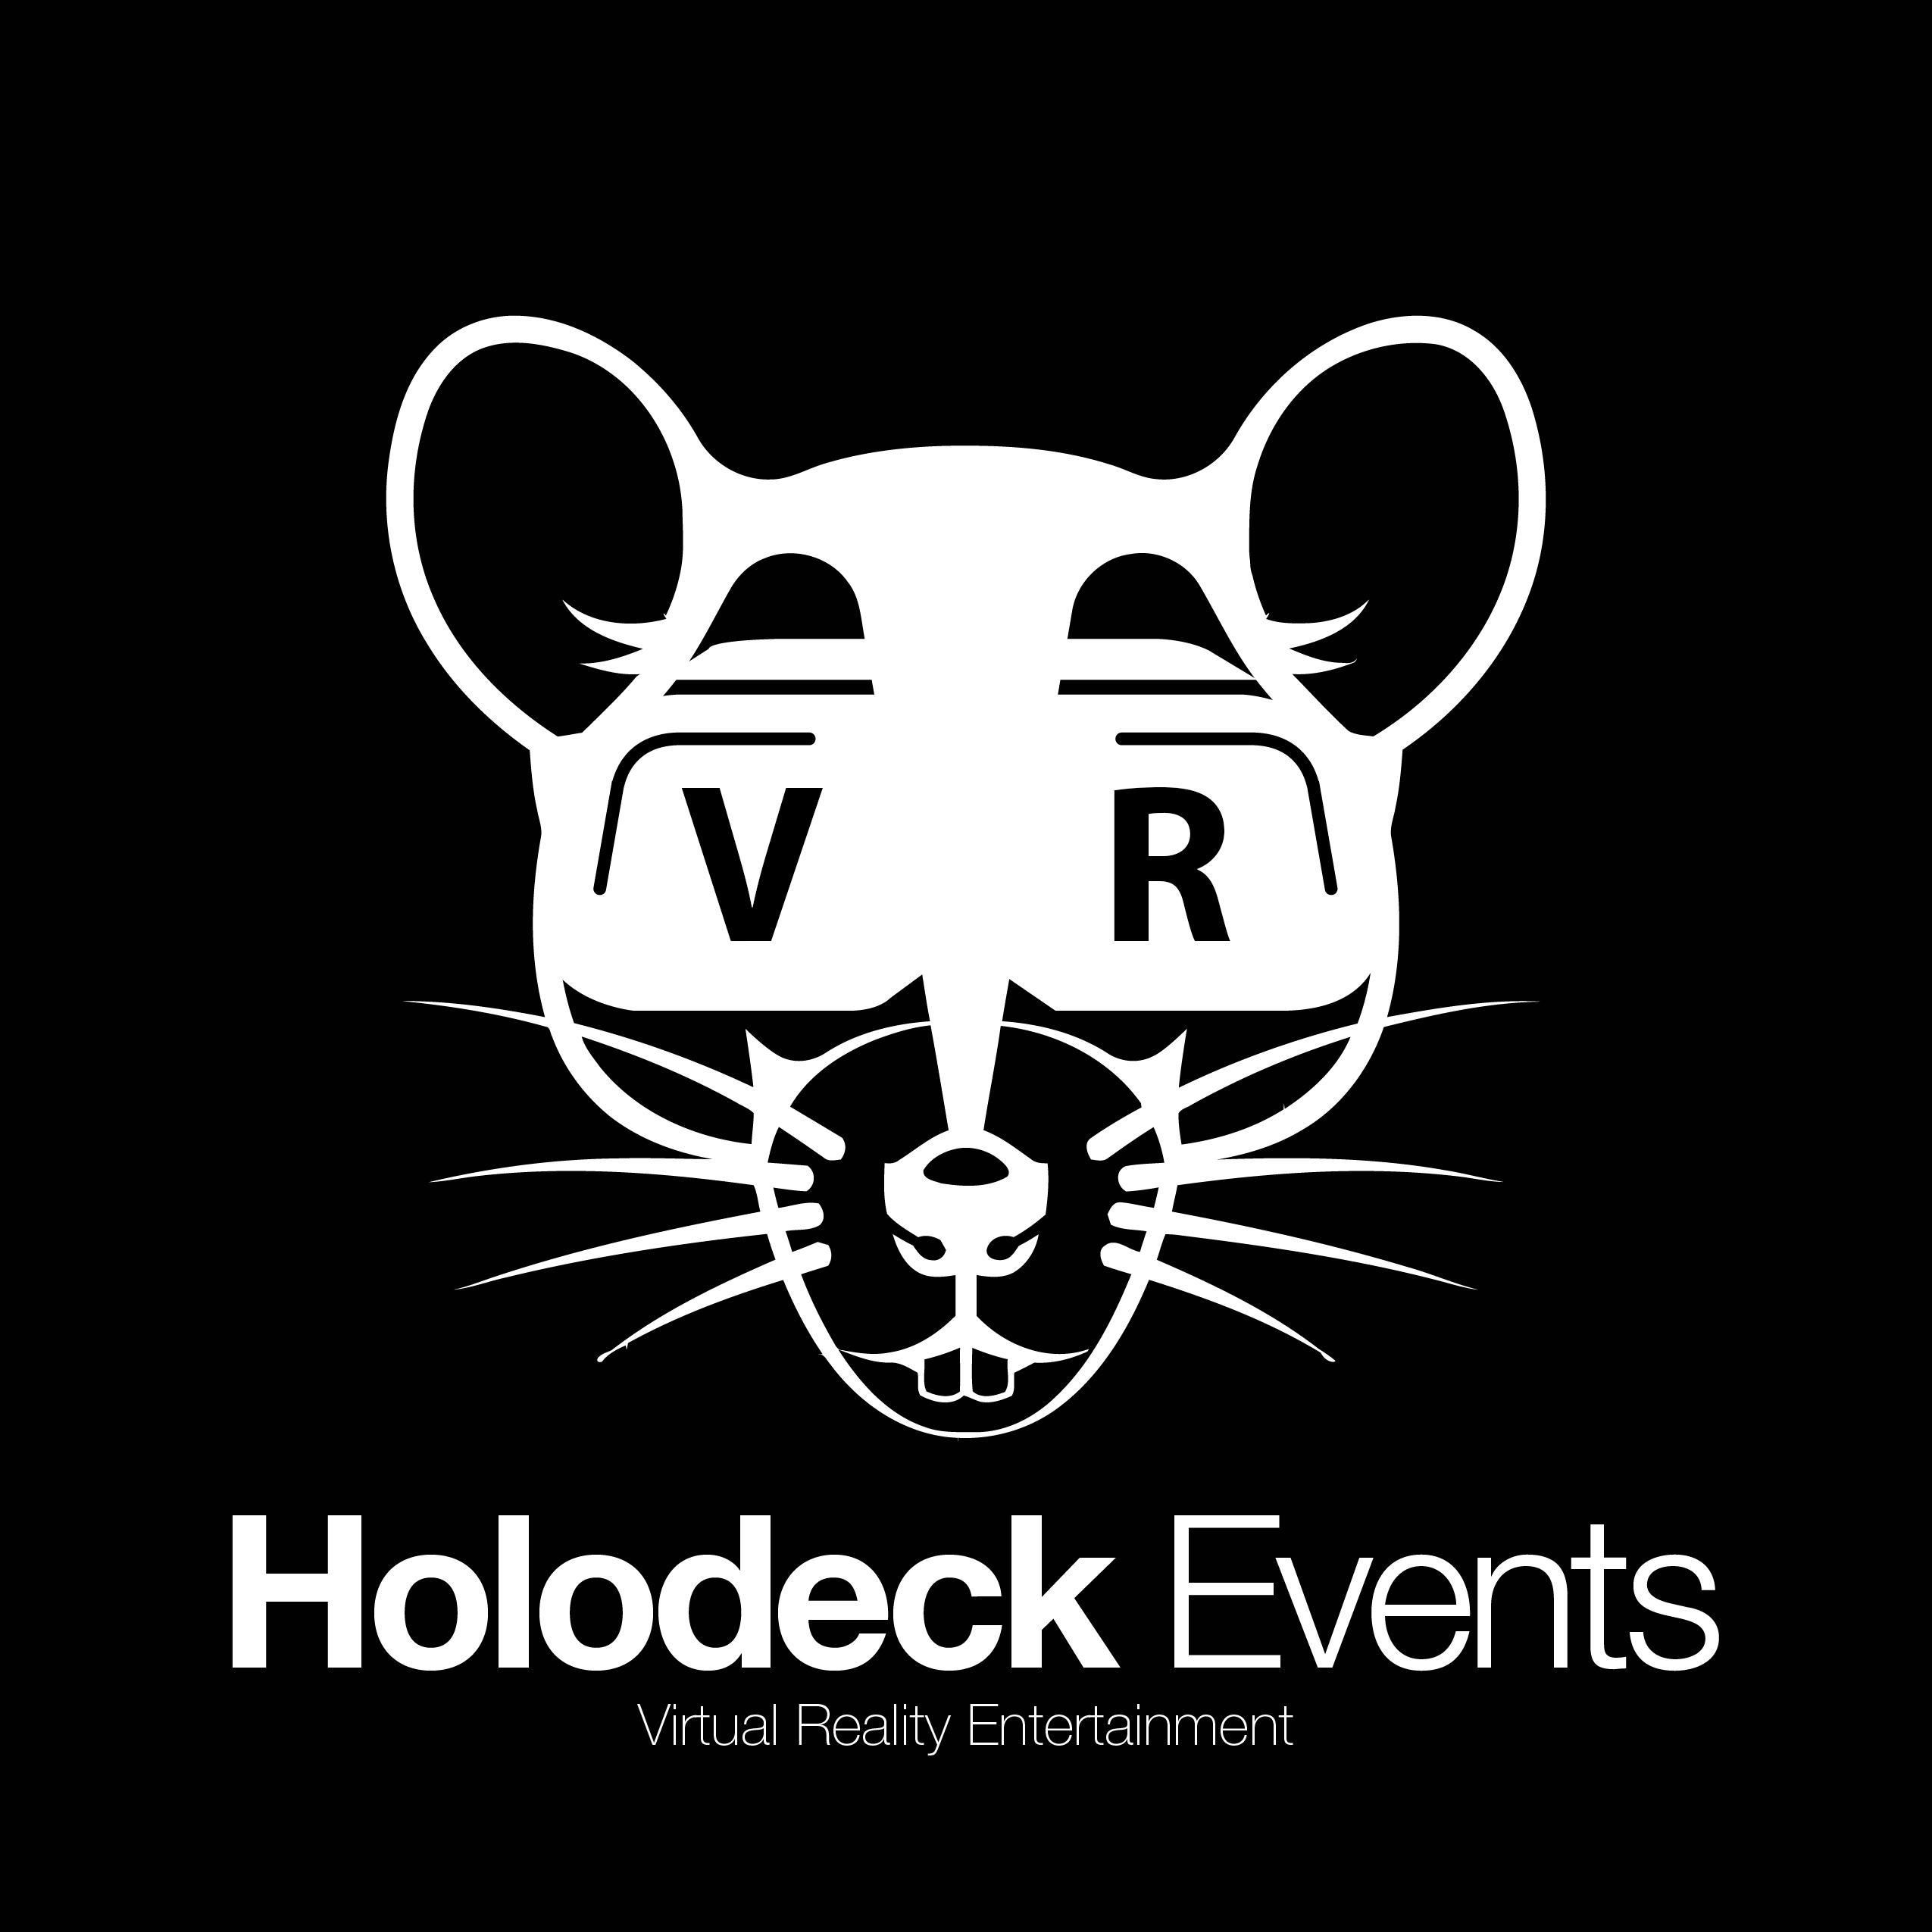 Holodeck Events - Holodeck Events